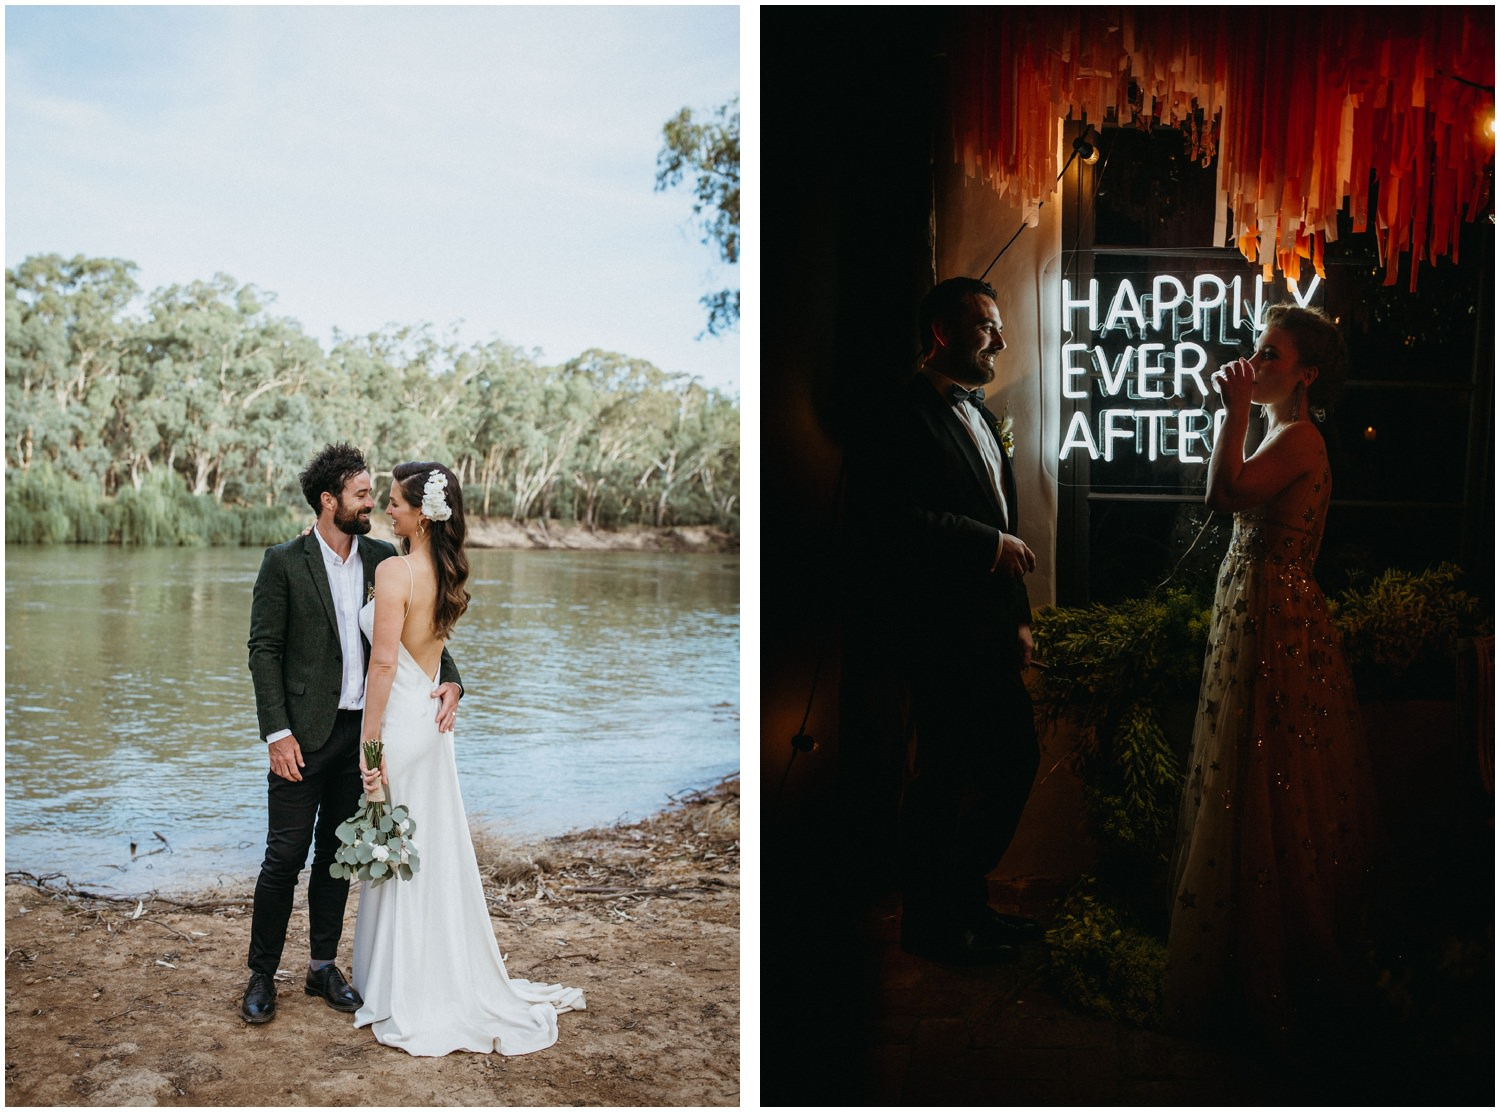 Melbourne Wedding Photographer - 2018 in review -766A7275.jpg